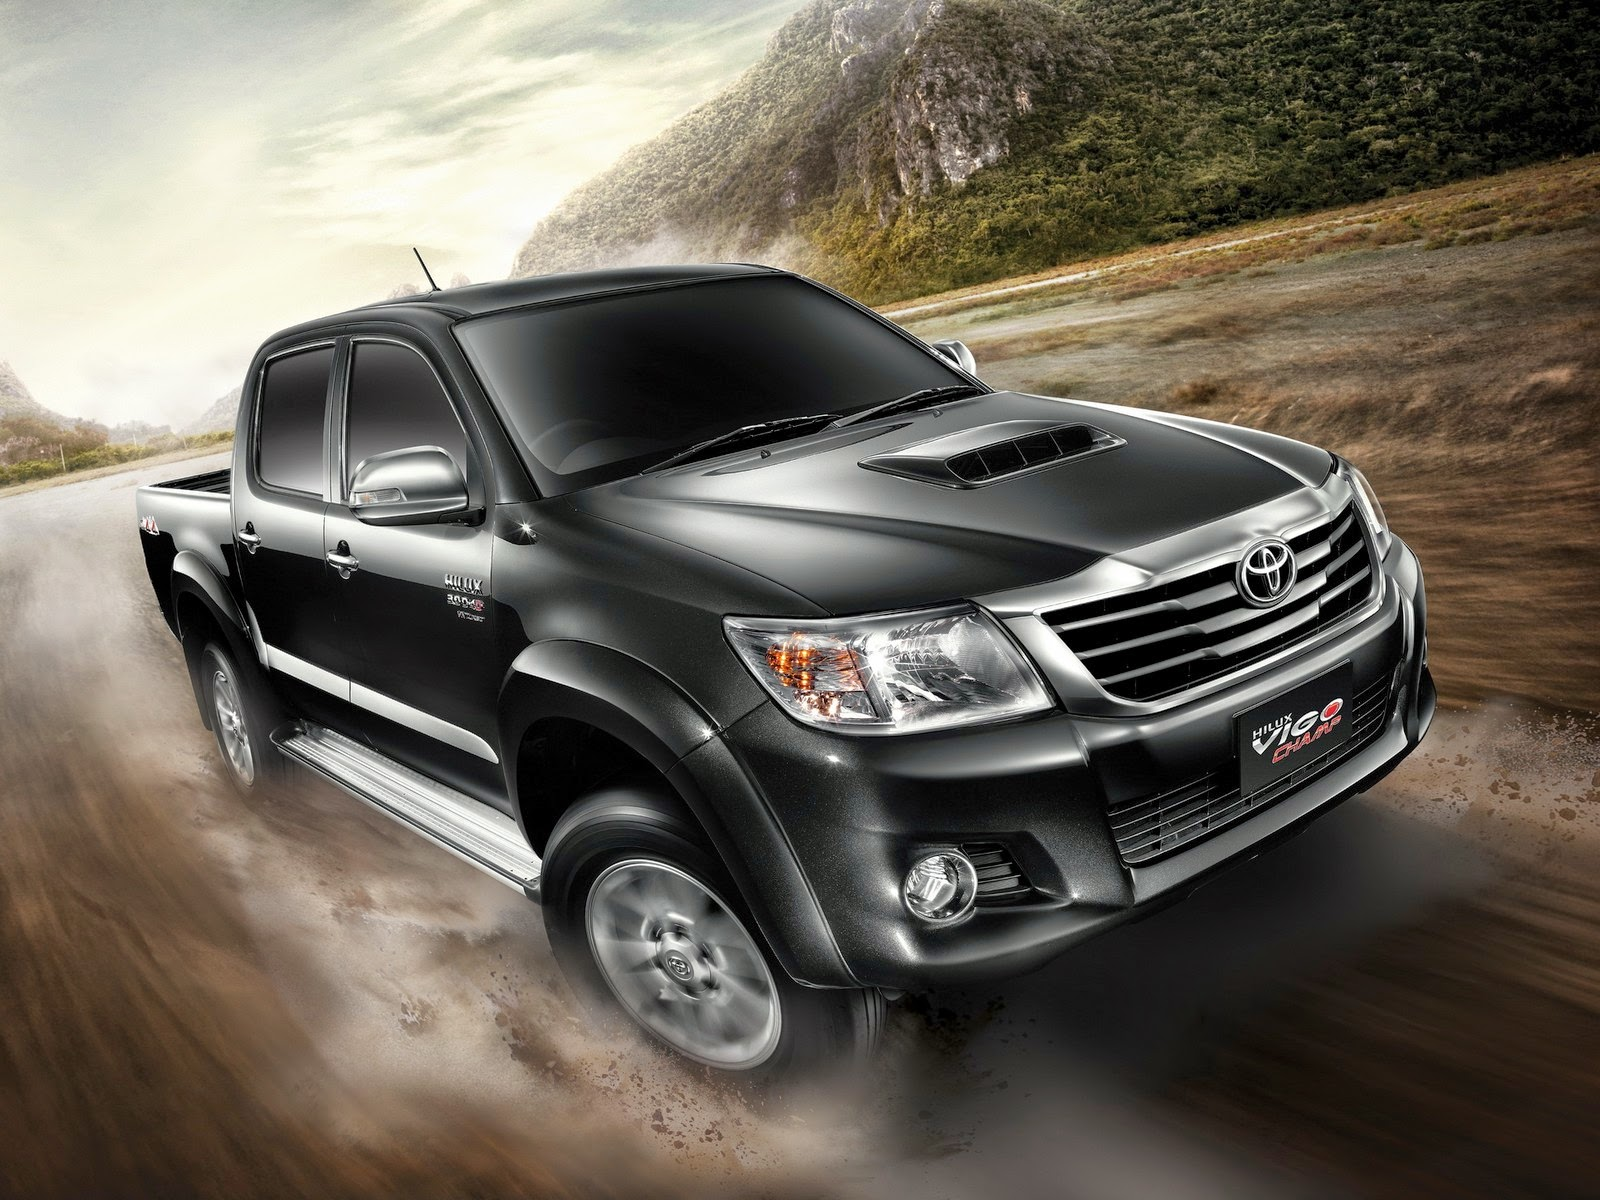 6 toyota hilux double cab a tough dependable and durable workhorse